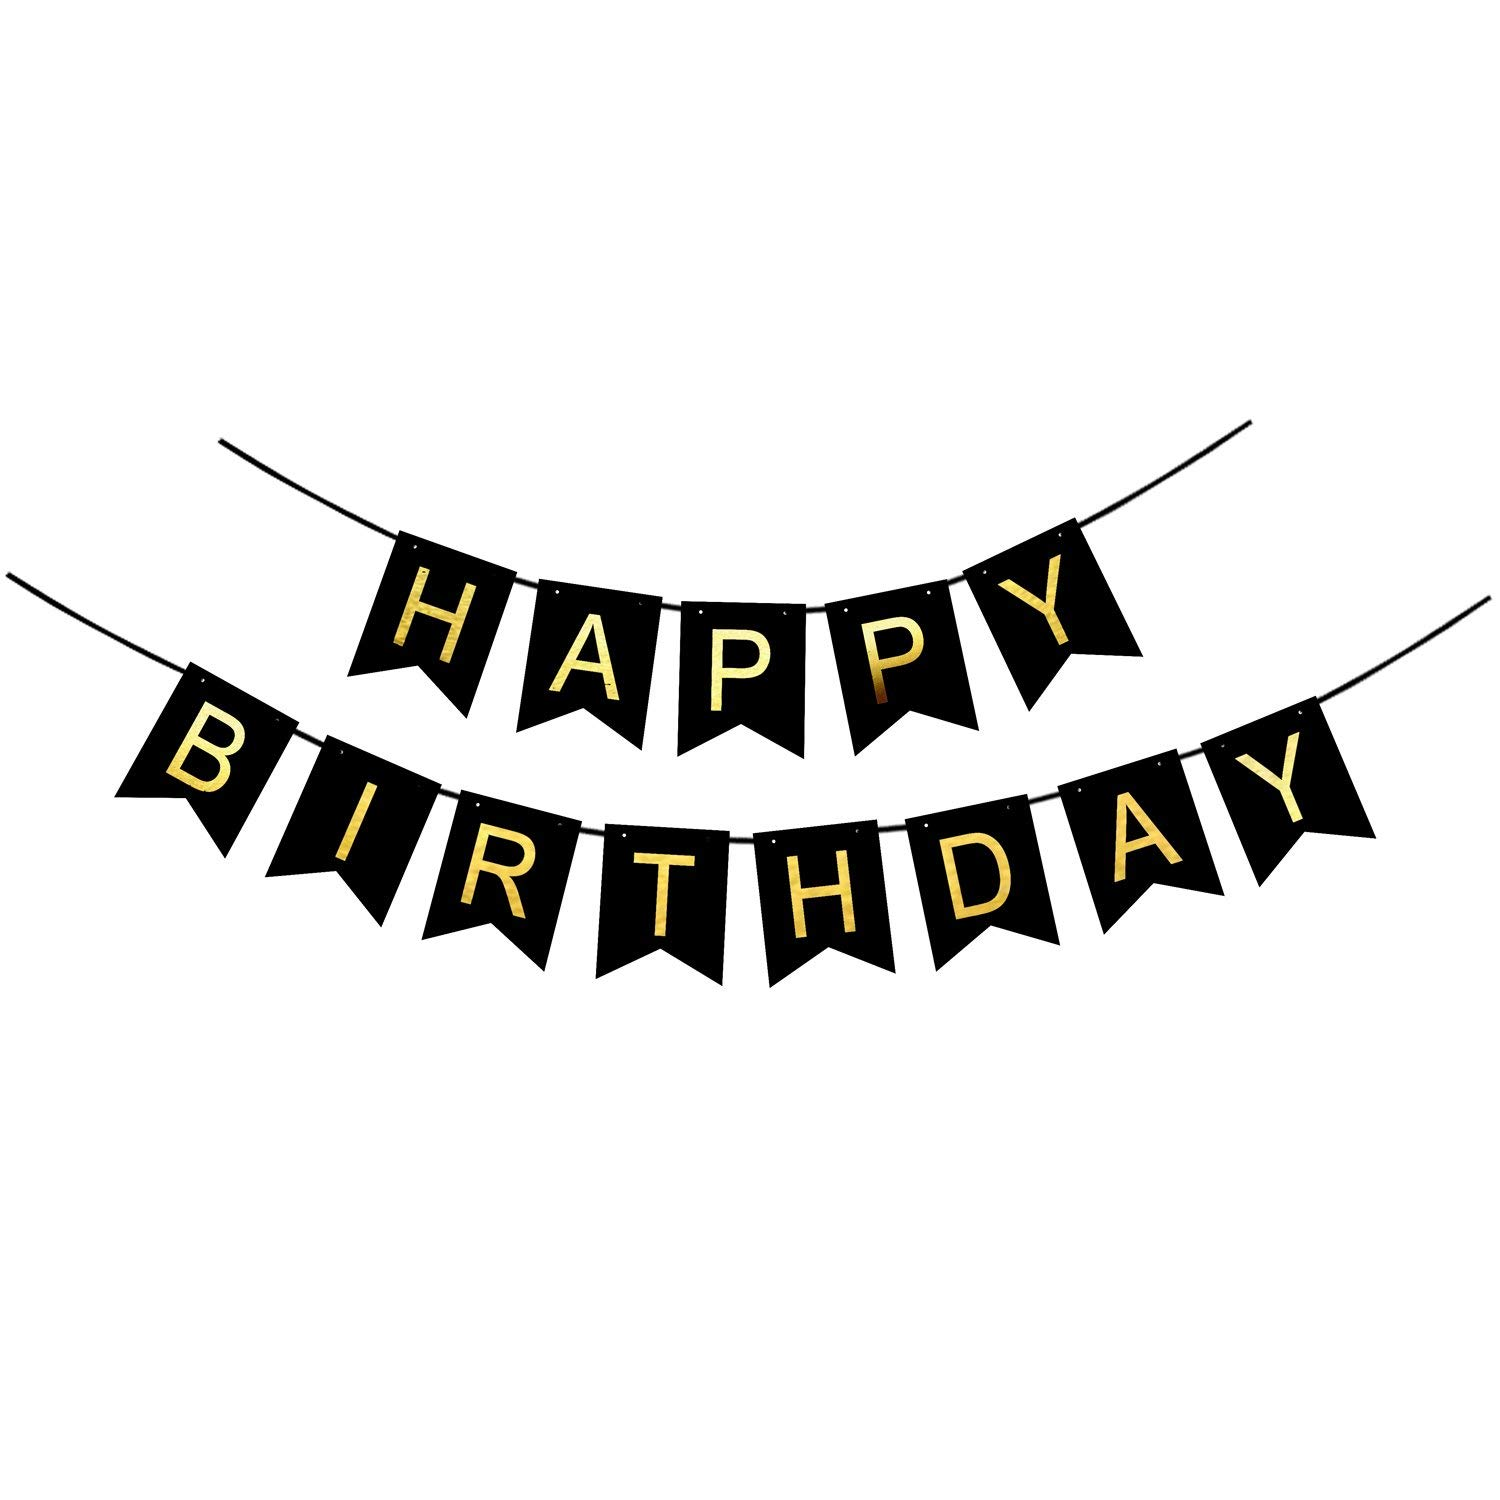 Buy Black And Gold Happy Birthday Bunting Banner With Gold